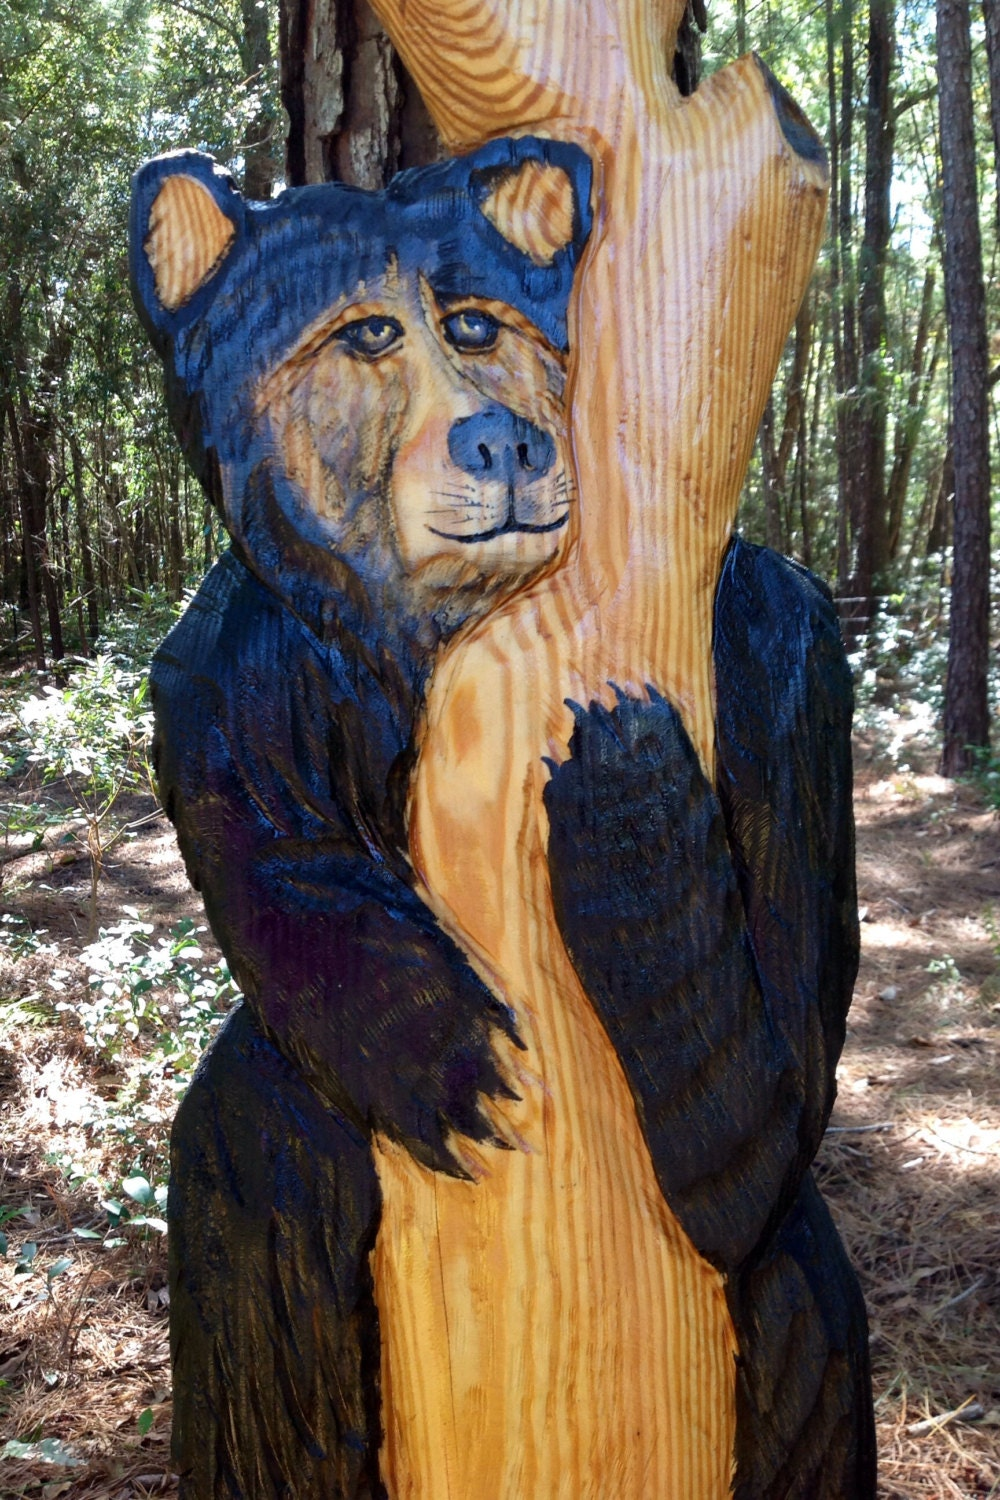 Black bear in tree chainsaw carving wooden wildlife